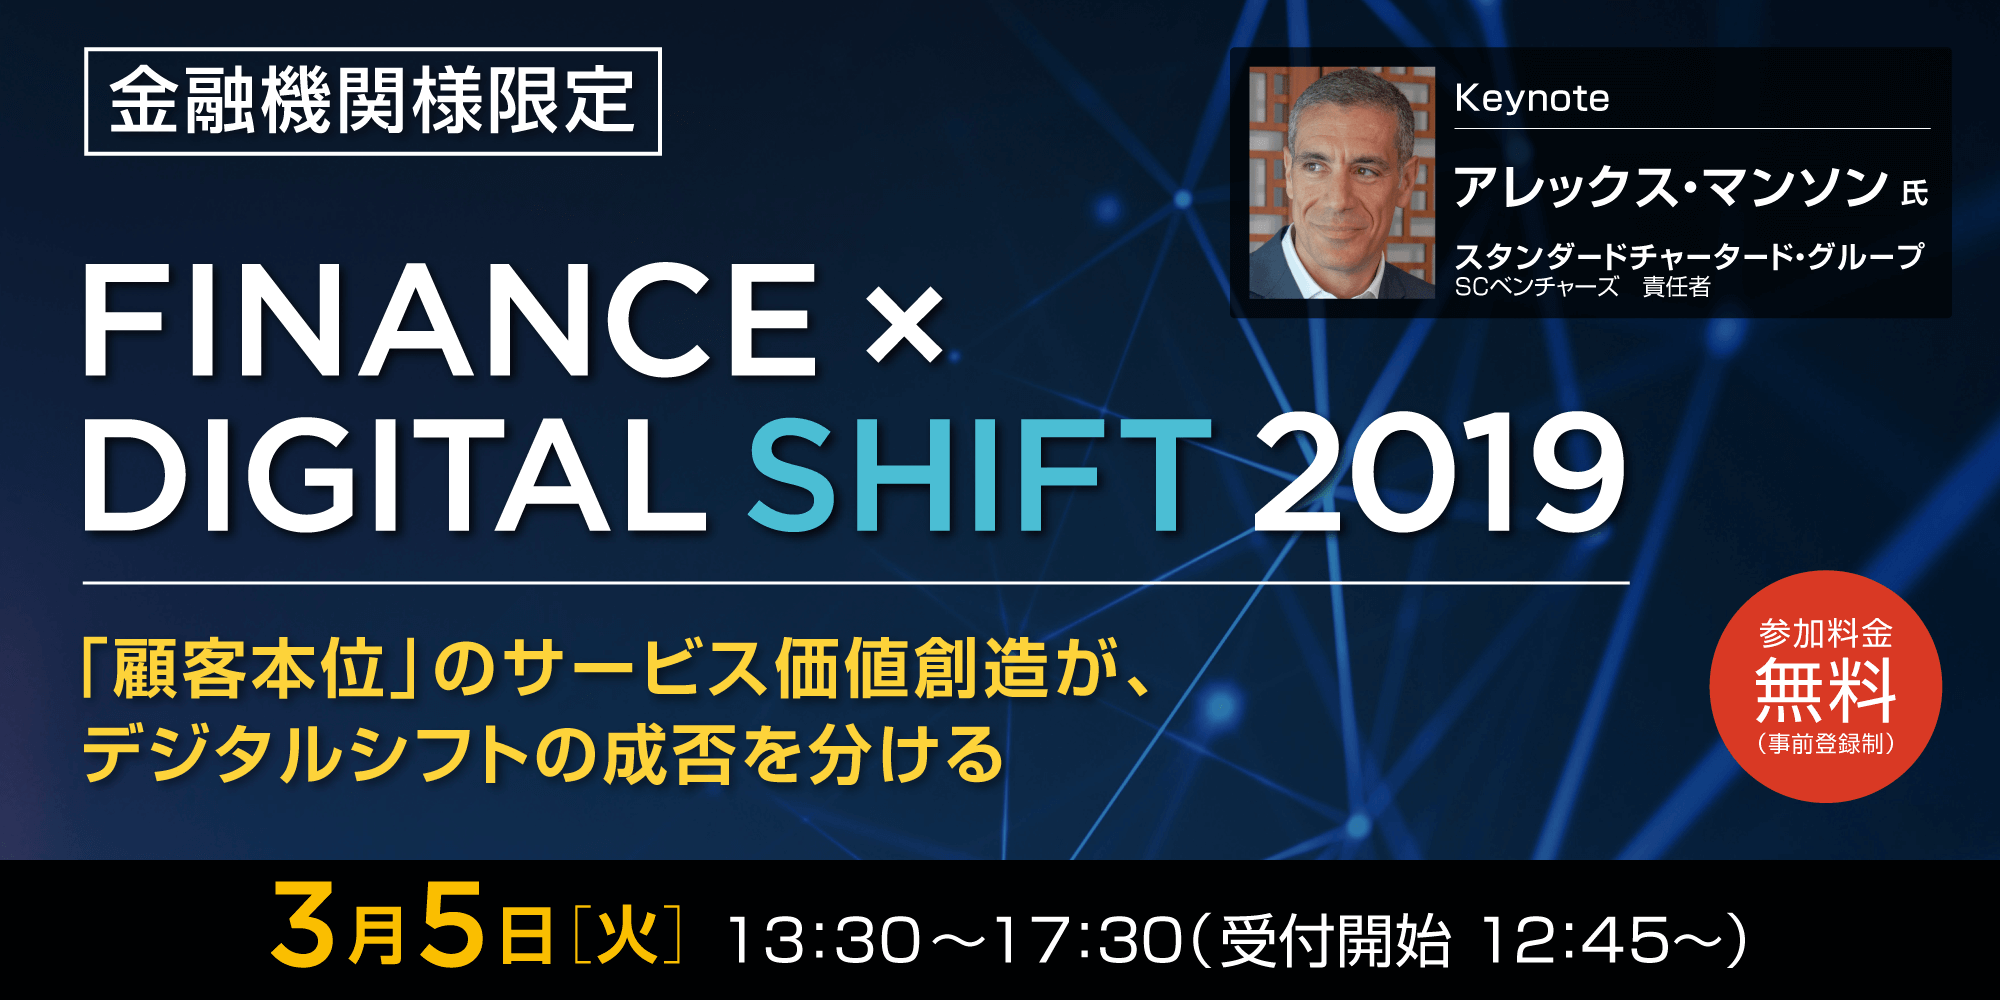 FINANCE×DIGITAL SHIFT 2019